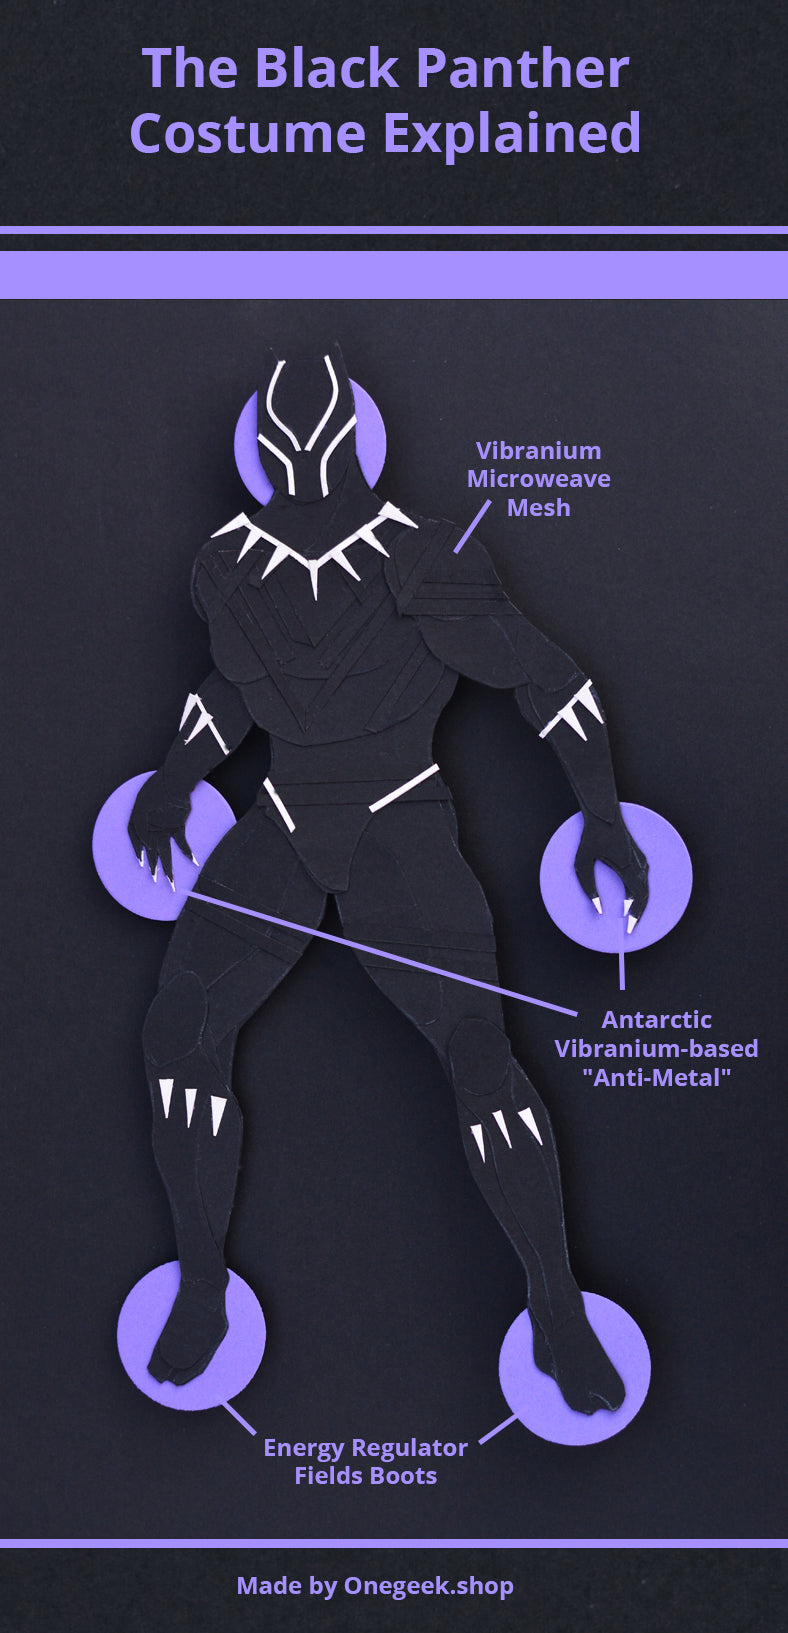 The Black Panther Costume/Suit Infographic